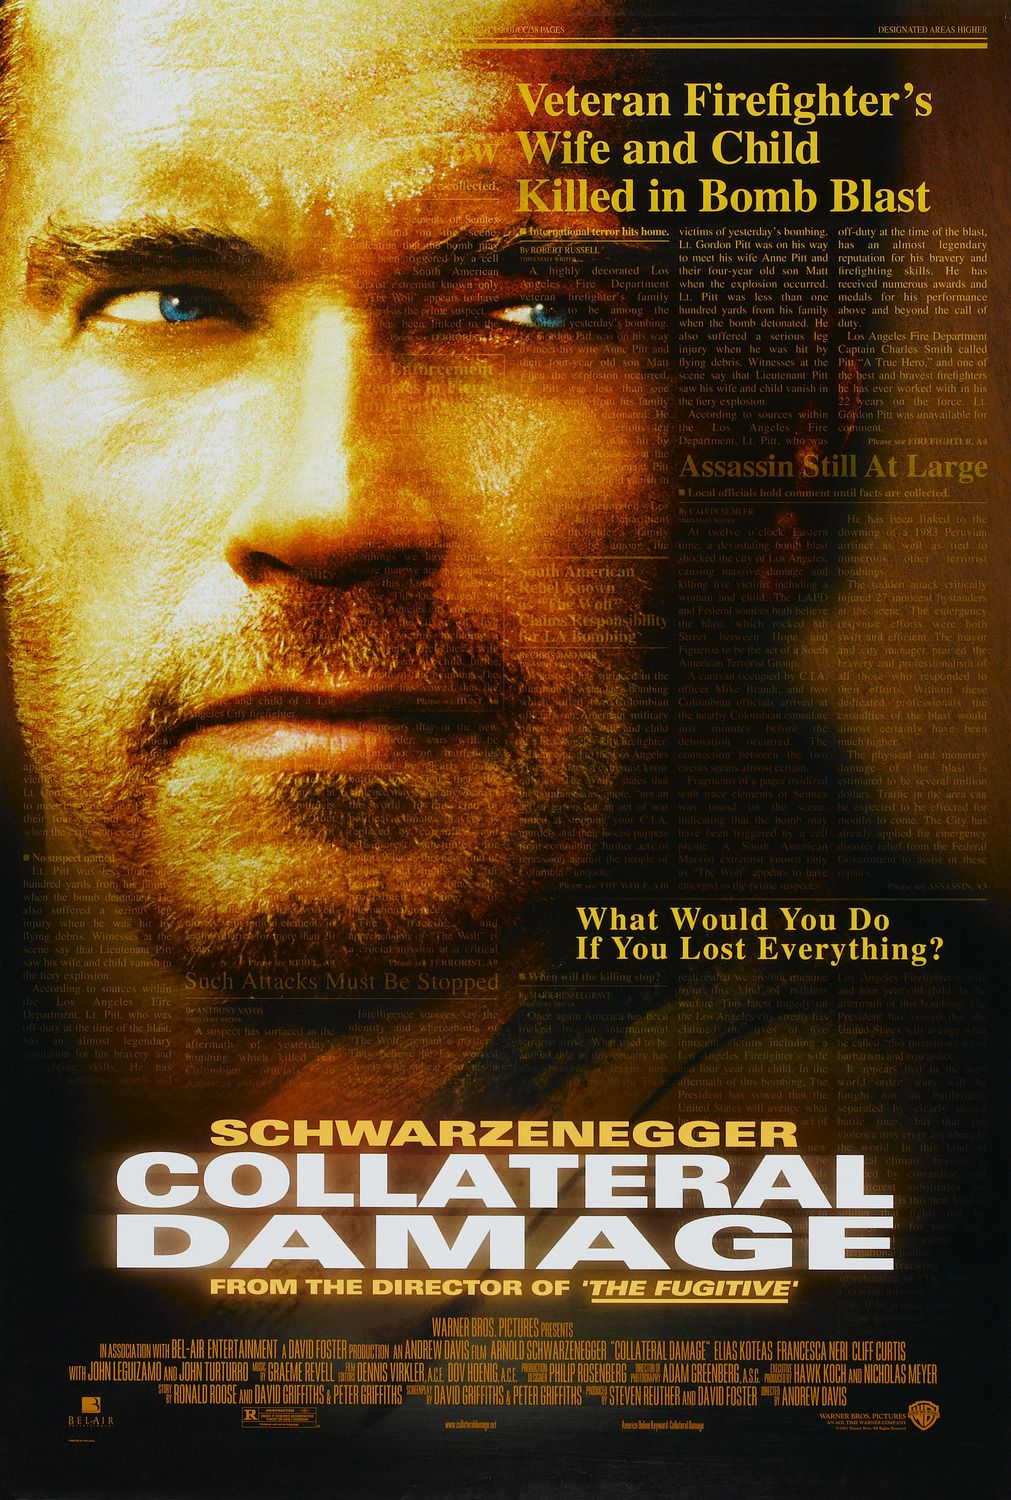 Collateral Damage (2002) - action film poster